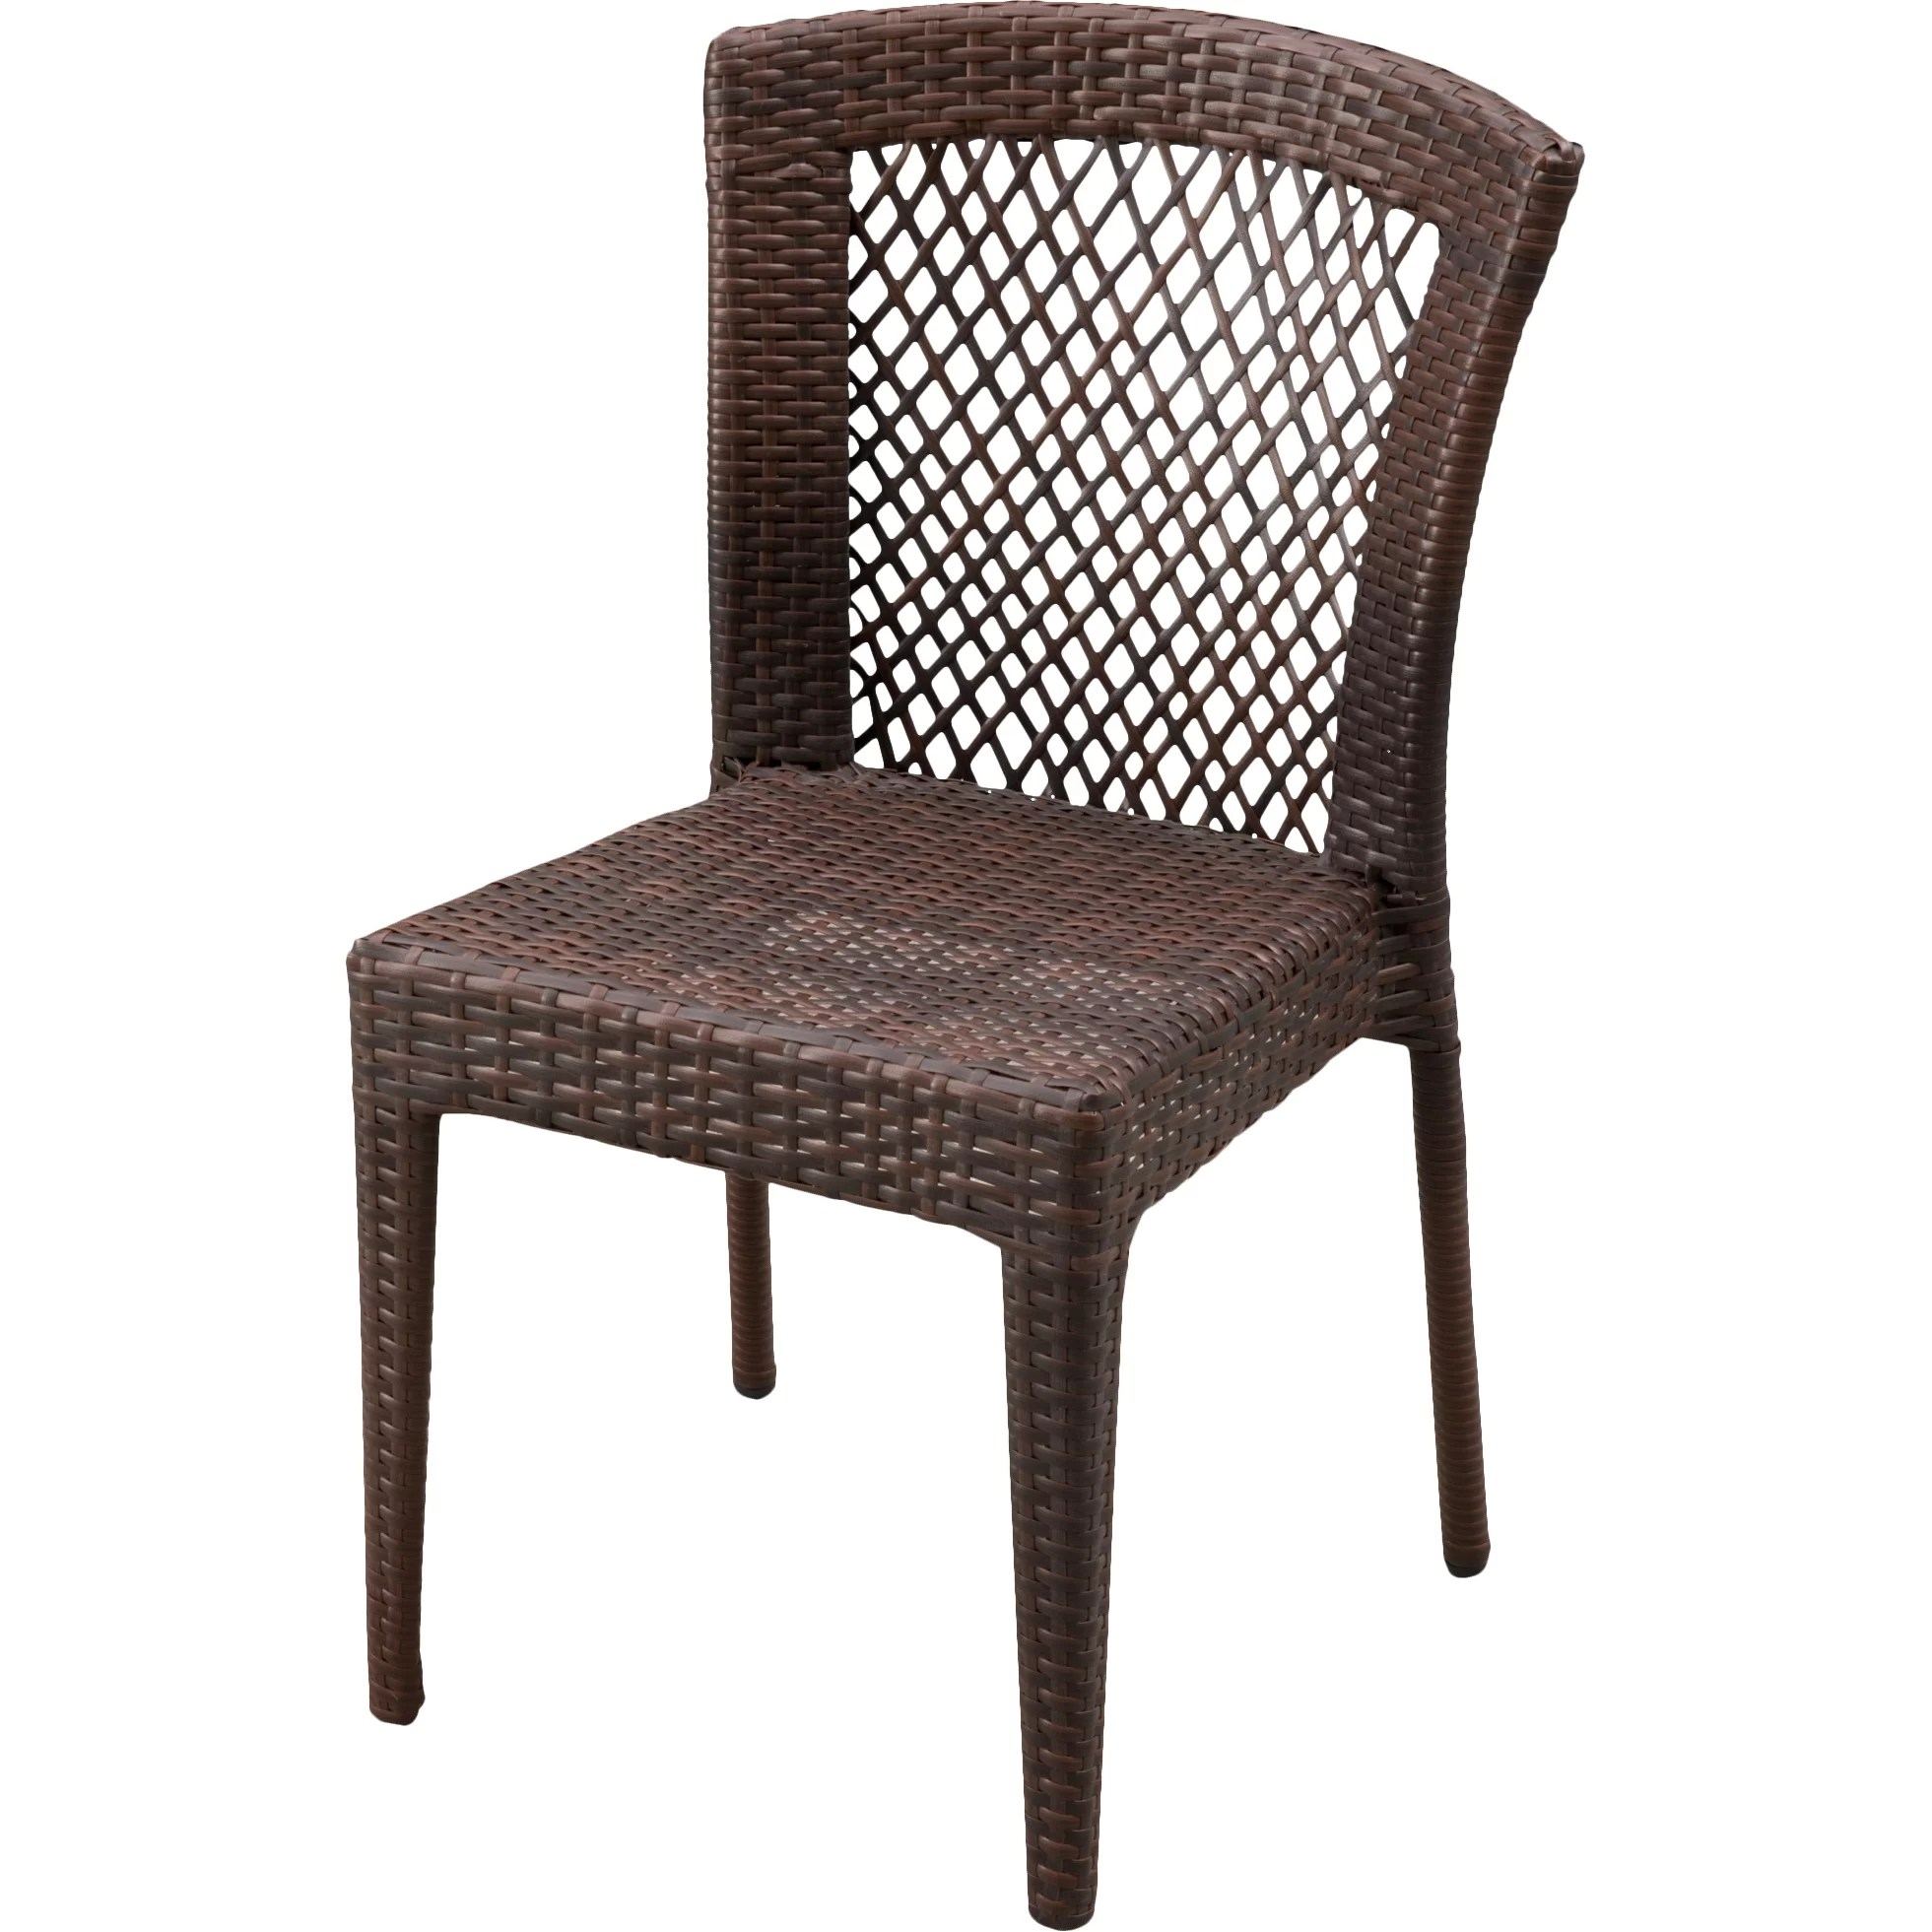 Wicker Patio Chair Breakwater Bay Dawson Outdoor Wicker Chair And Reviews Wayfair